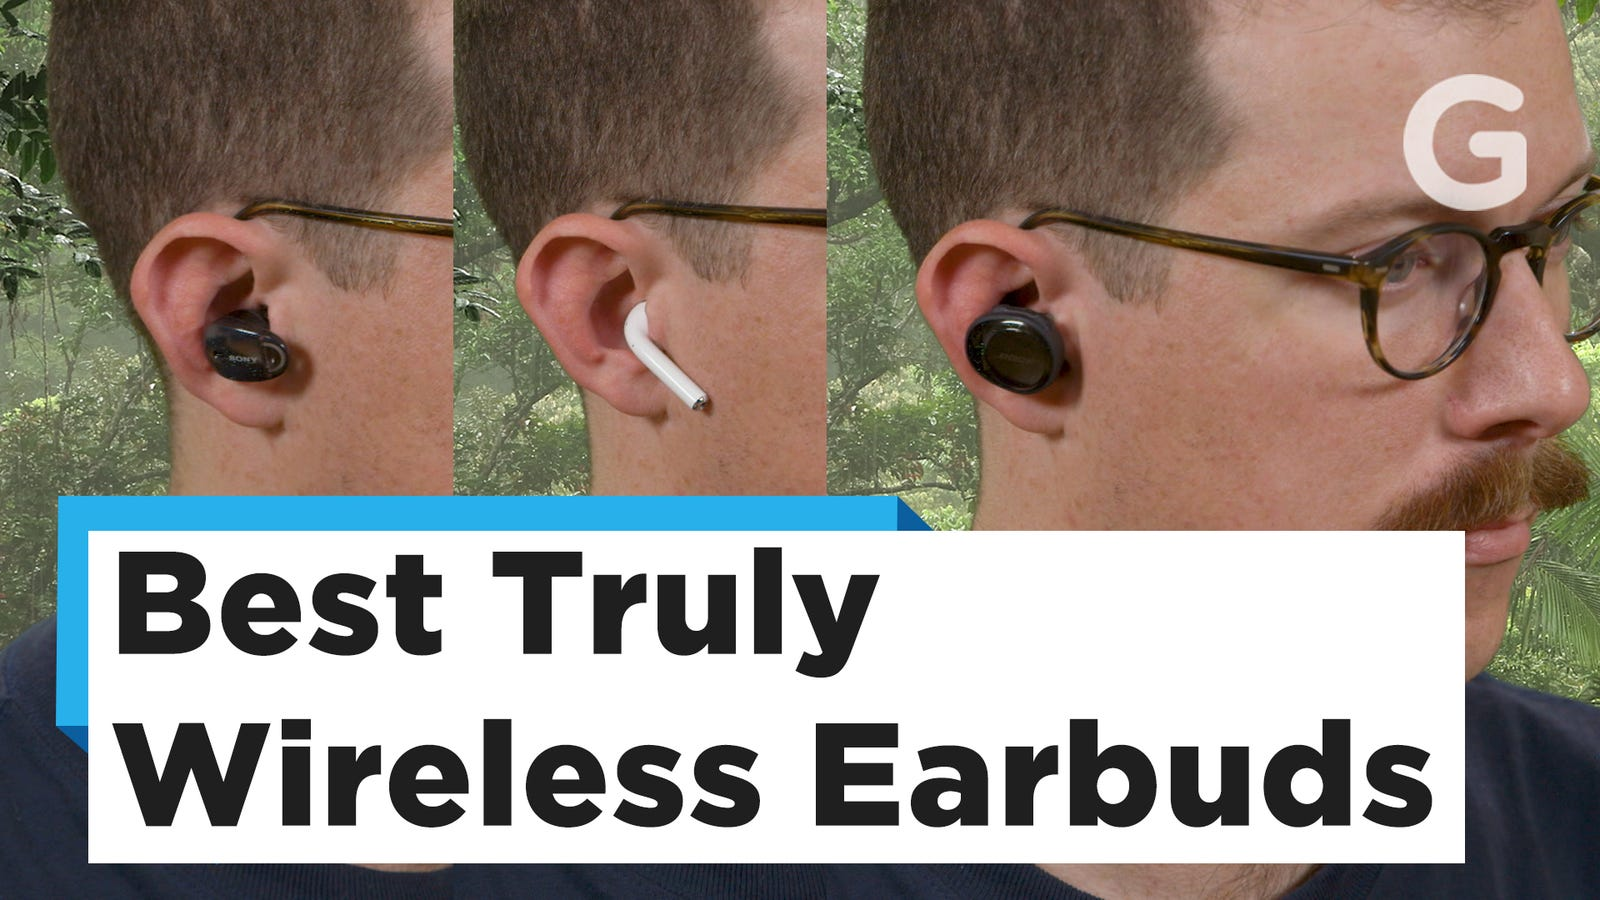 lightning exercise earbuds - The Truly Wireless Earbuds You Should Buy Instead of AirPods